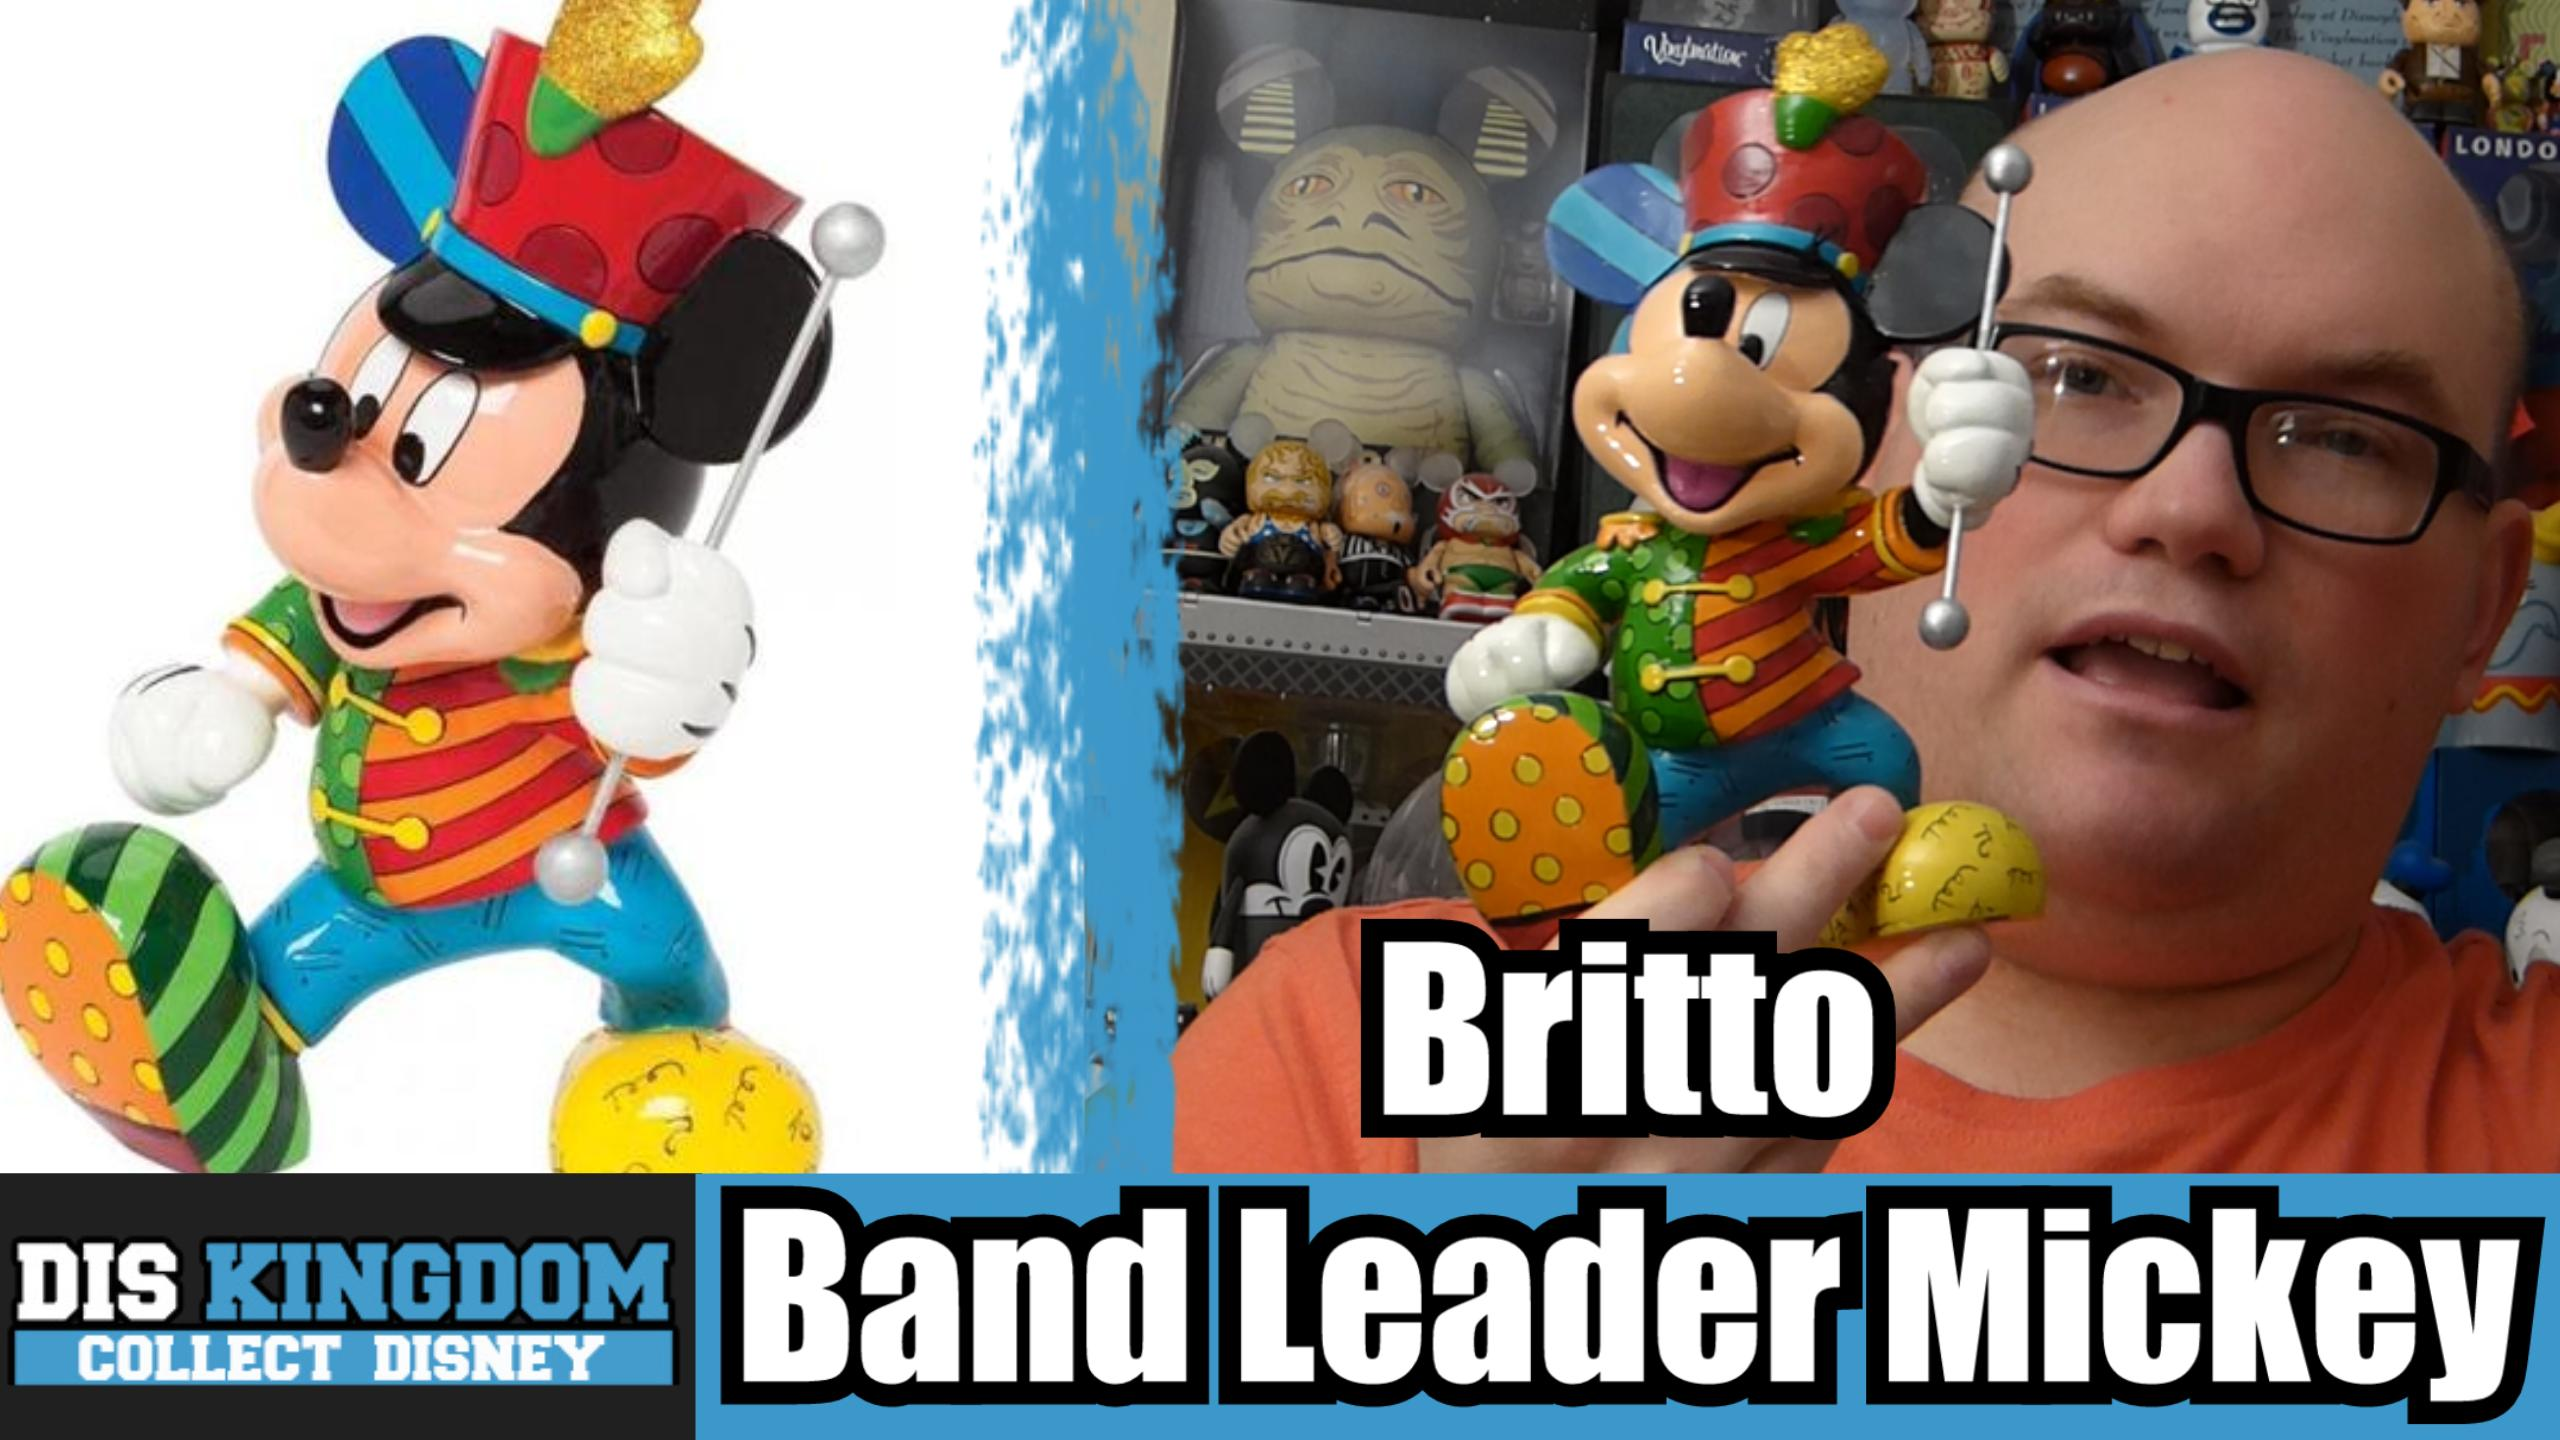 Britto Band Leader Mickey Mouse Review